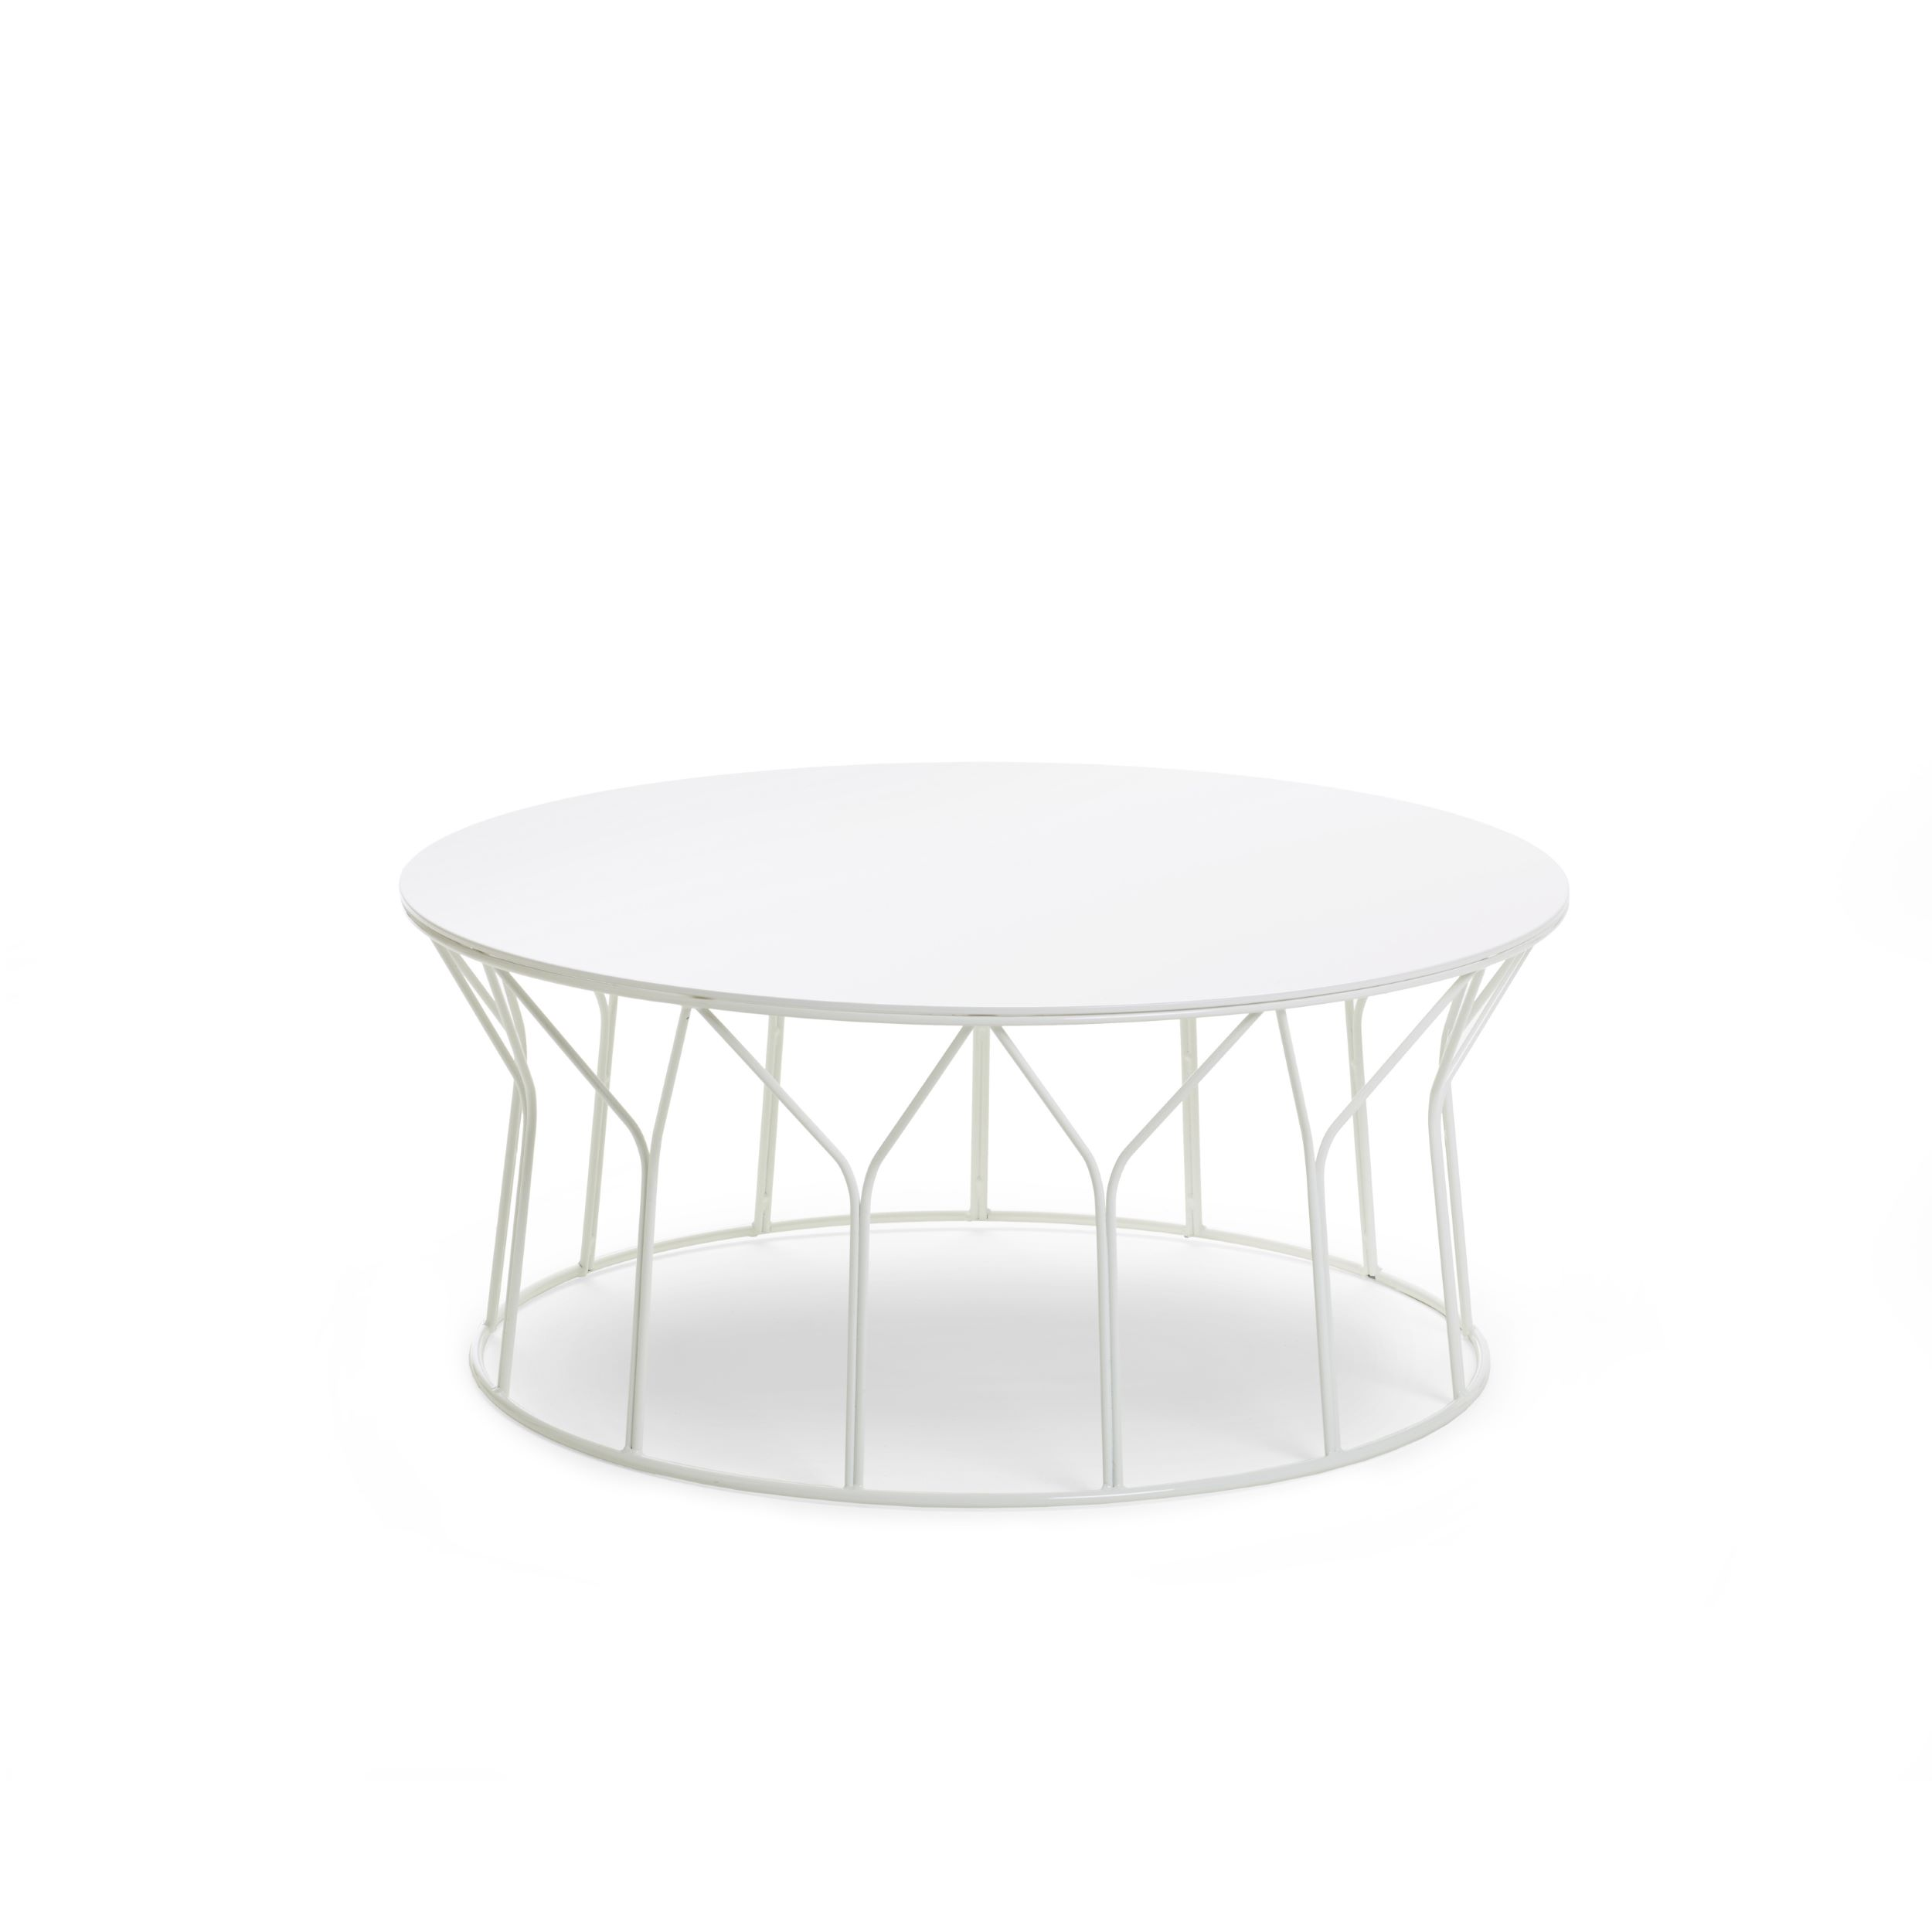 CIRCUS PLANTER Tables Formfjord Offecct 104760 1010 897.